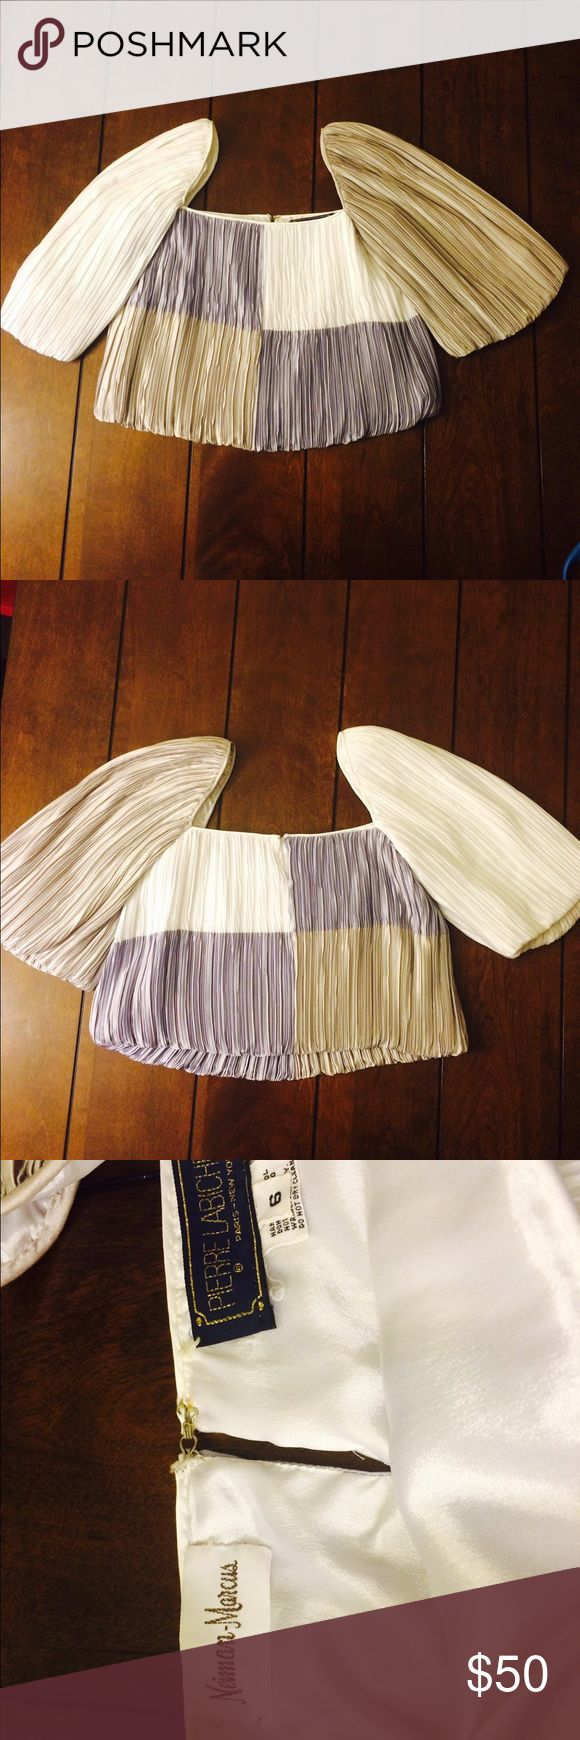 Vintage crop top Pierre labiche (from Neiman Marcus) vintage crinkle top. Poly satin. Grey, dusty lavender, and white. 80s. Super cute over a grey, lavender or white dress. Some tiny snags, but very wearable. Size 6. Measures 10 1/2 inches too to bottom. Tops Crop Tops